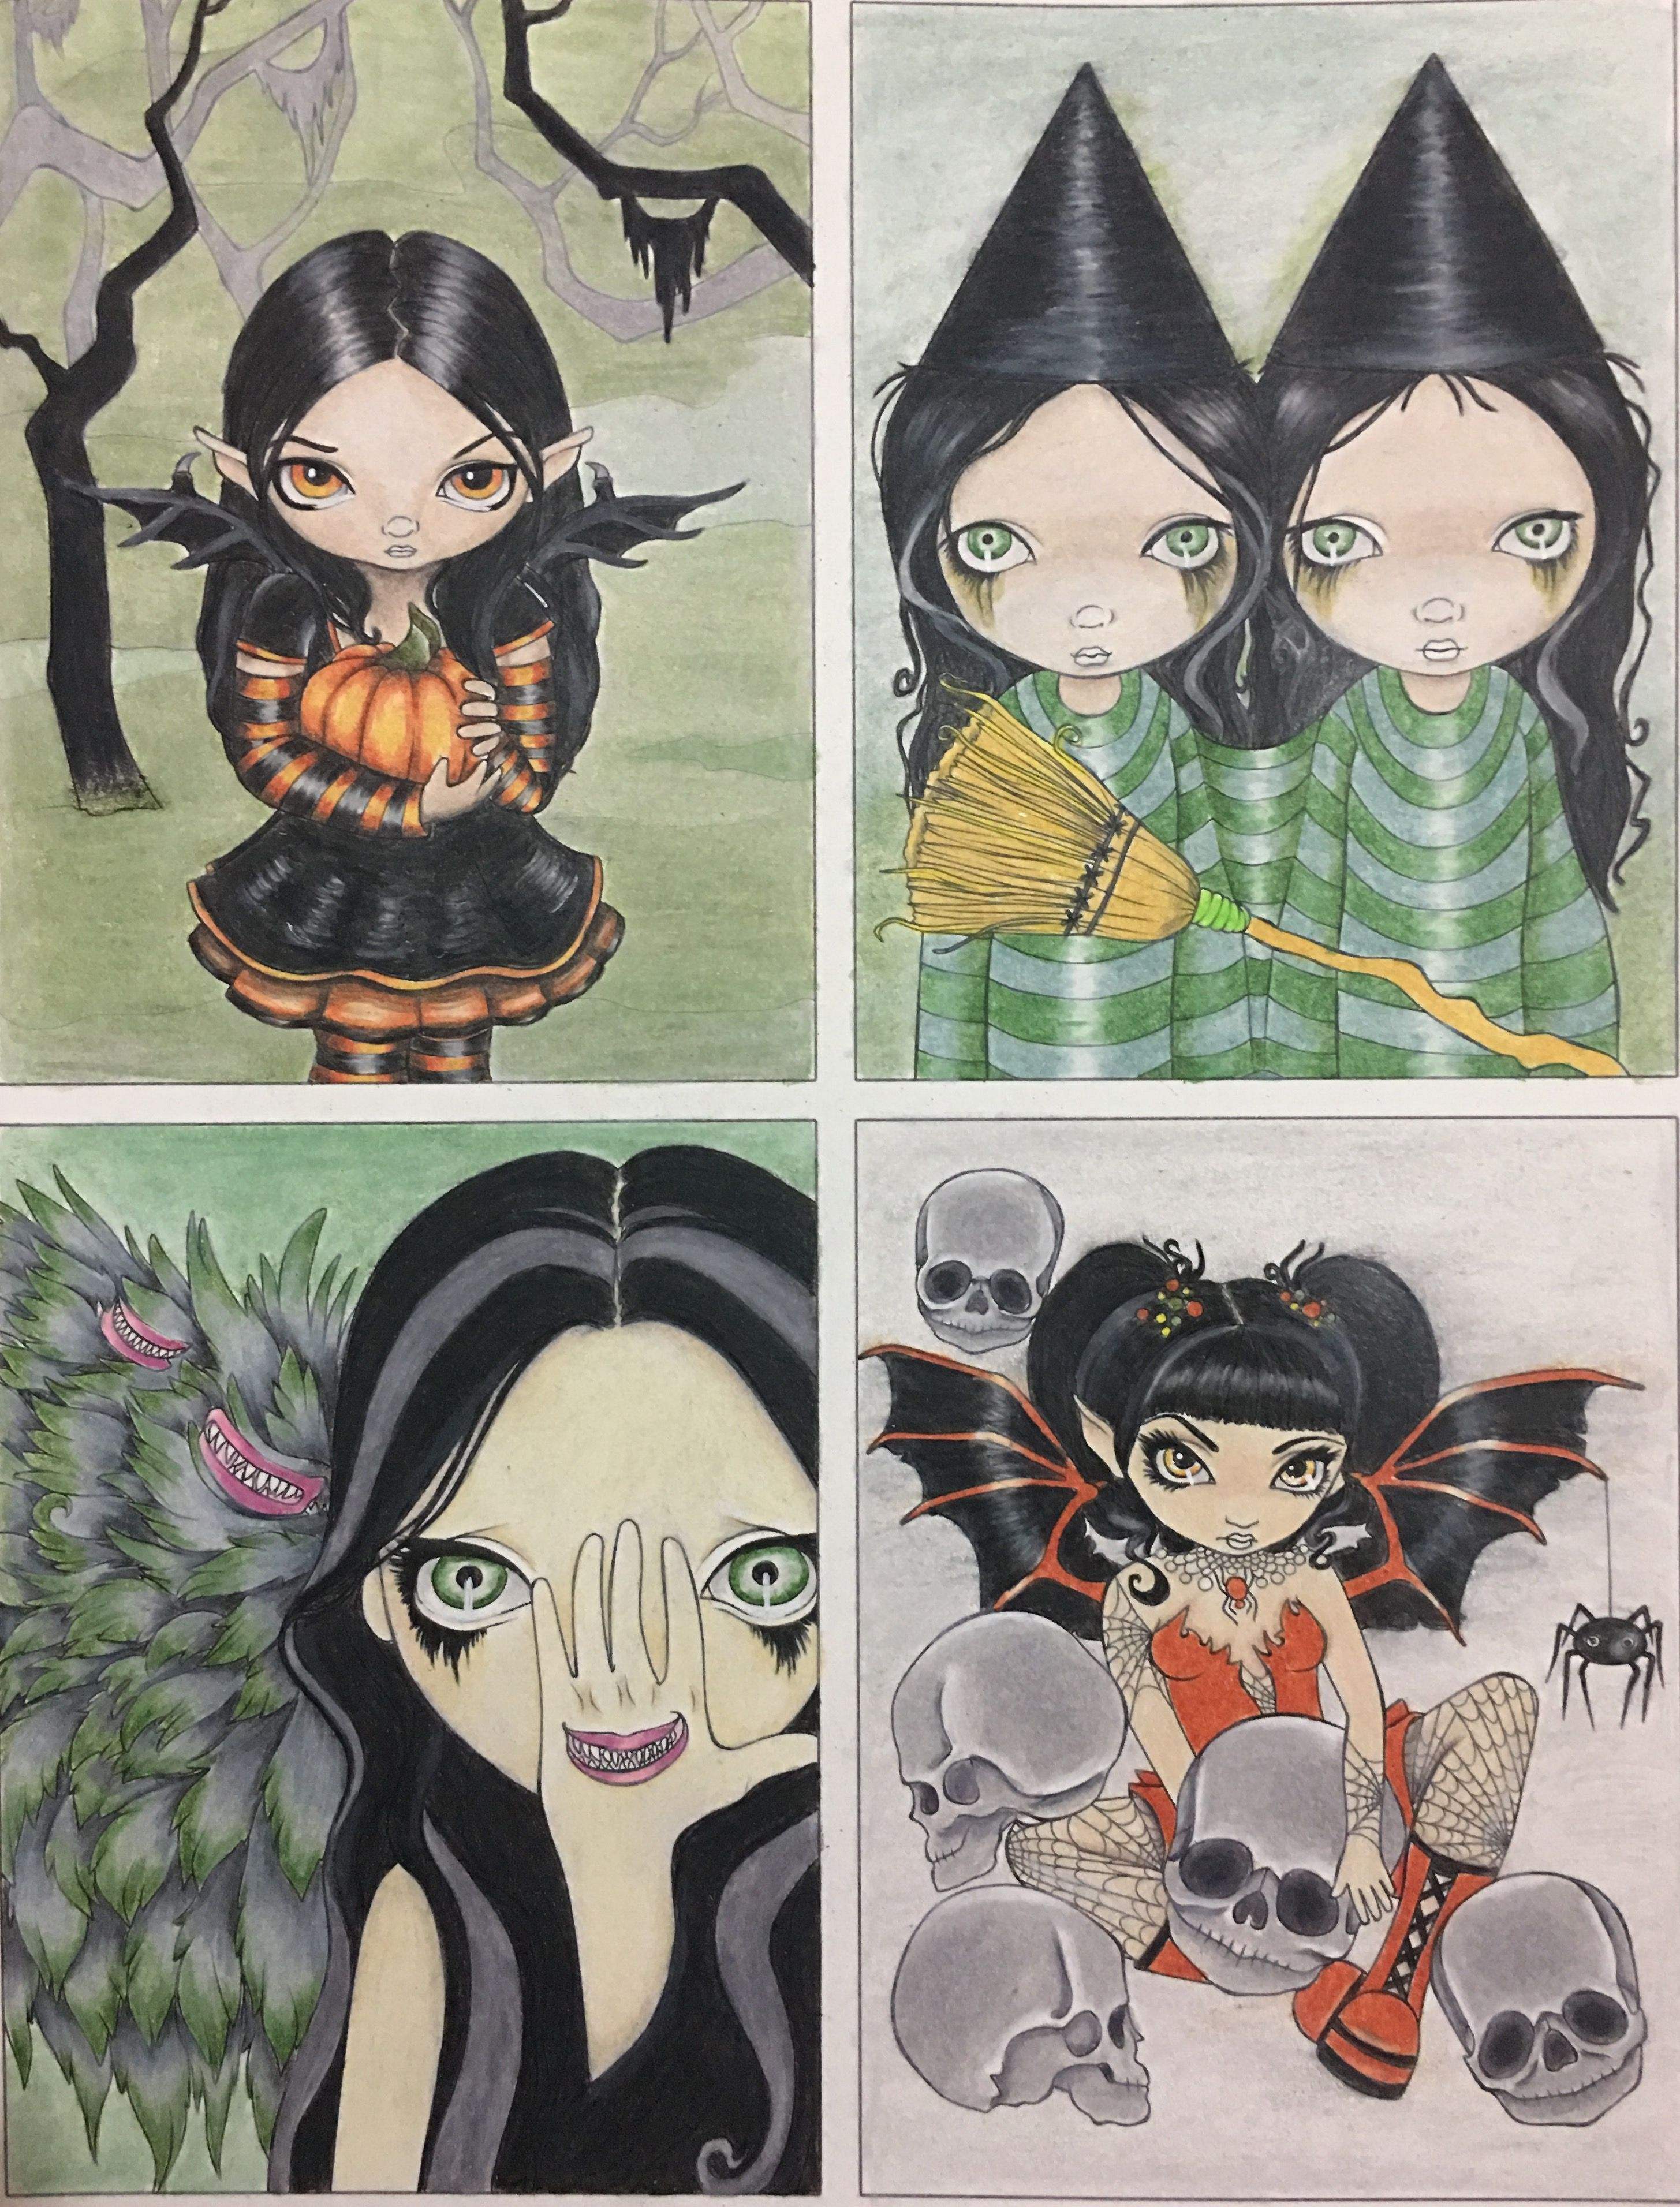 Pin by Cindy Pezzin on A-JASMINE BECKET-GRIFFITH | Jasmine becket griffith, Artwork, Coloring books